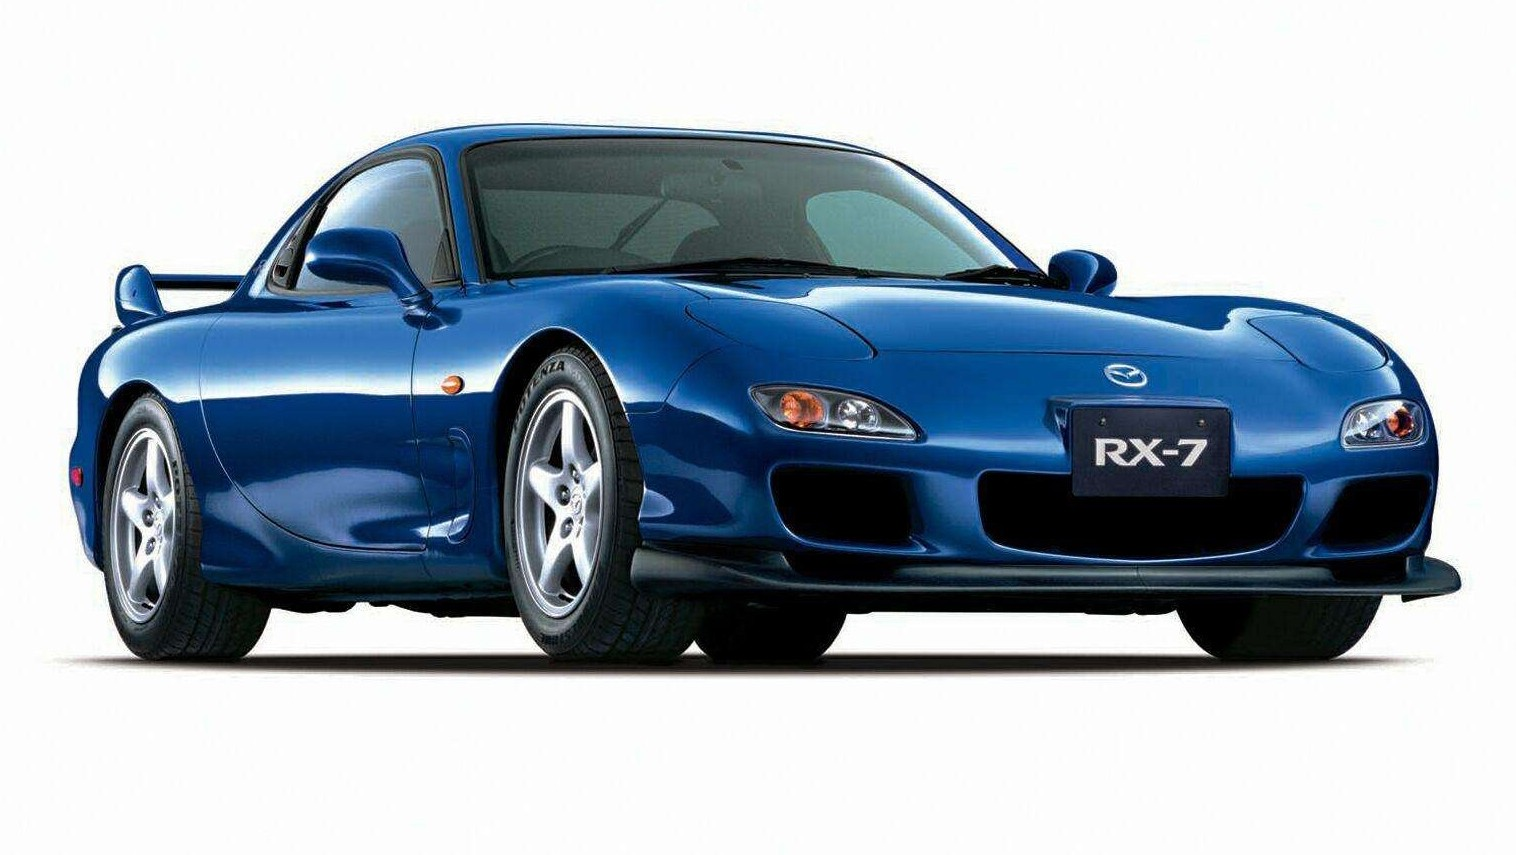 Why was the rotary engine by Mazda dropped and never taken up by other manufacturers?